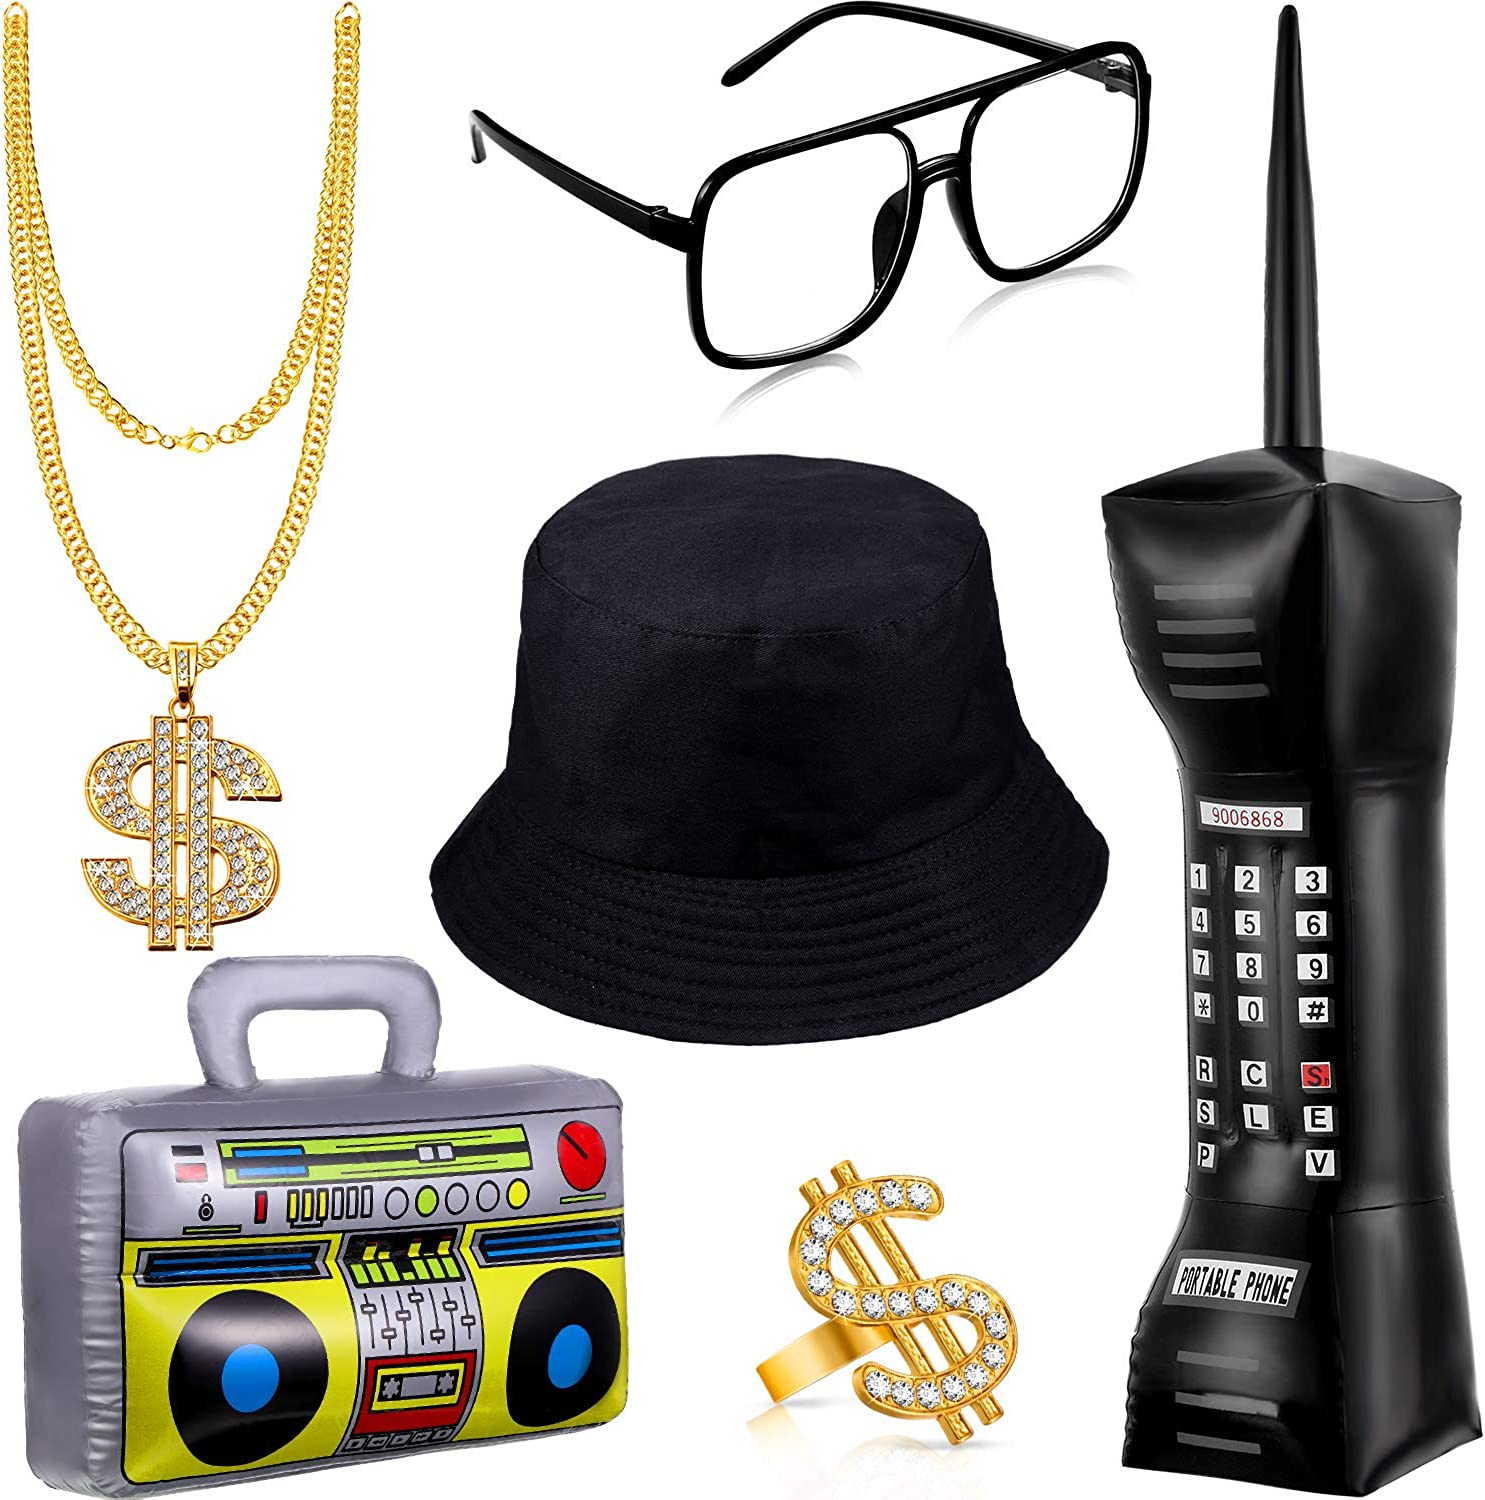 6 Pieces 80s/90s Hip Hop Costume Kit Inflatable Radio Boom Box Mobile Phone Necklace Ring Sunglasses Bucket Hat Rapper Accessories